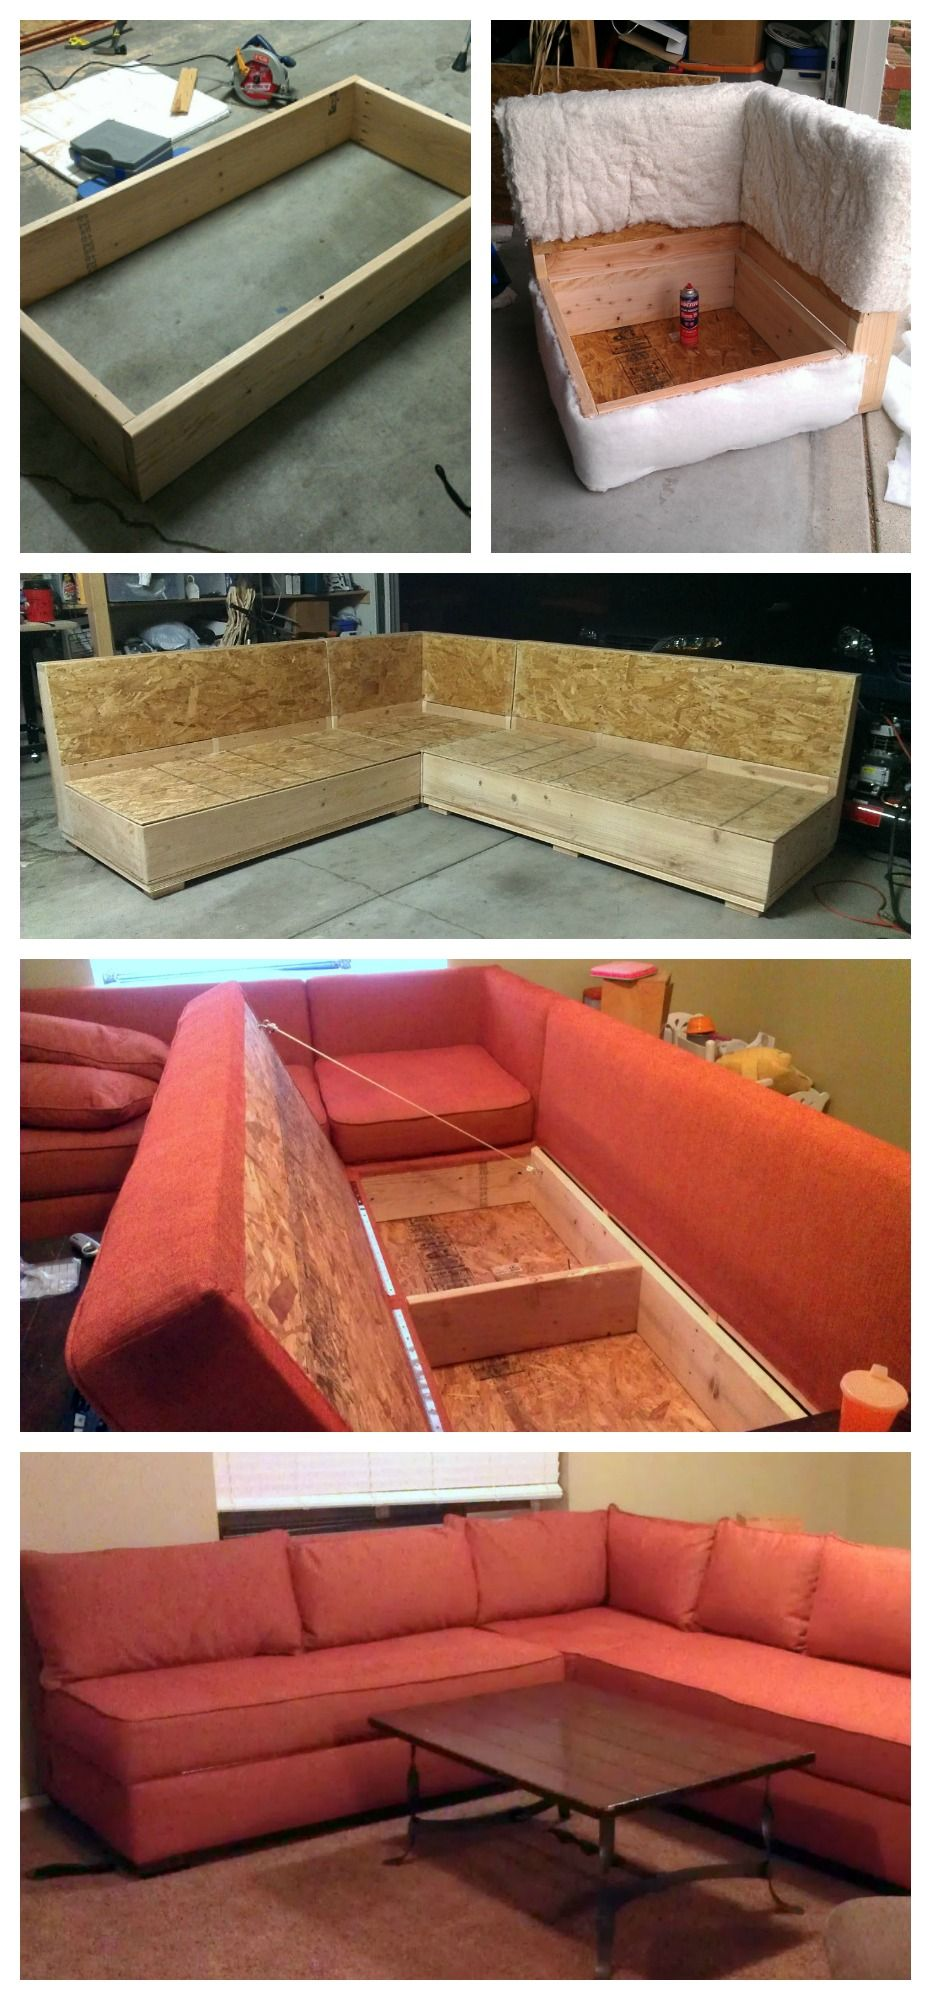 Diy Sofa Sectional With Storage Uses Store Bought Cushions Just Build Base And Staple Fabric Over It Diy Sofa Tiny House Storage Diy Furniture